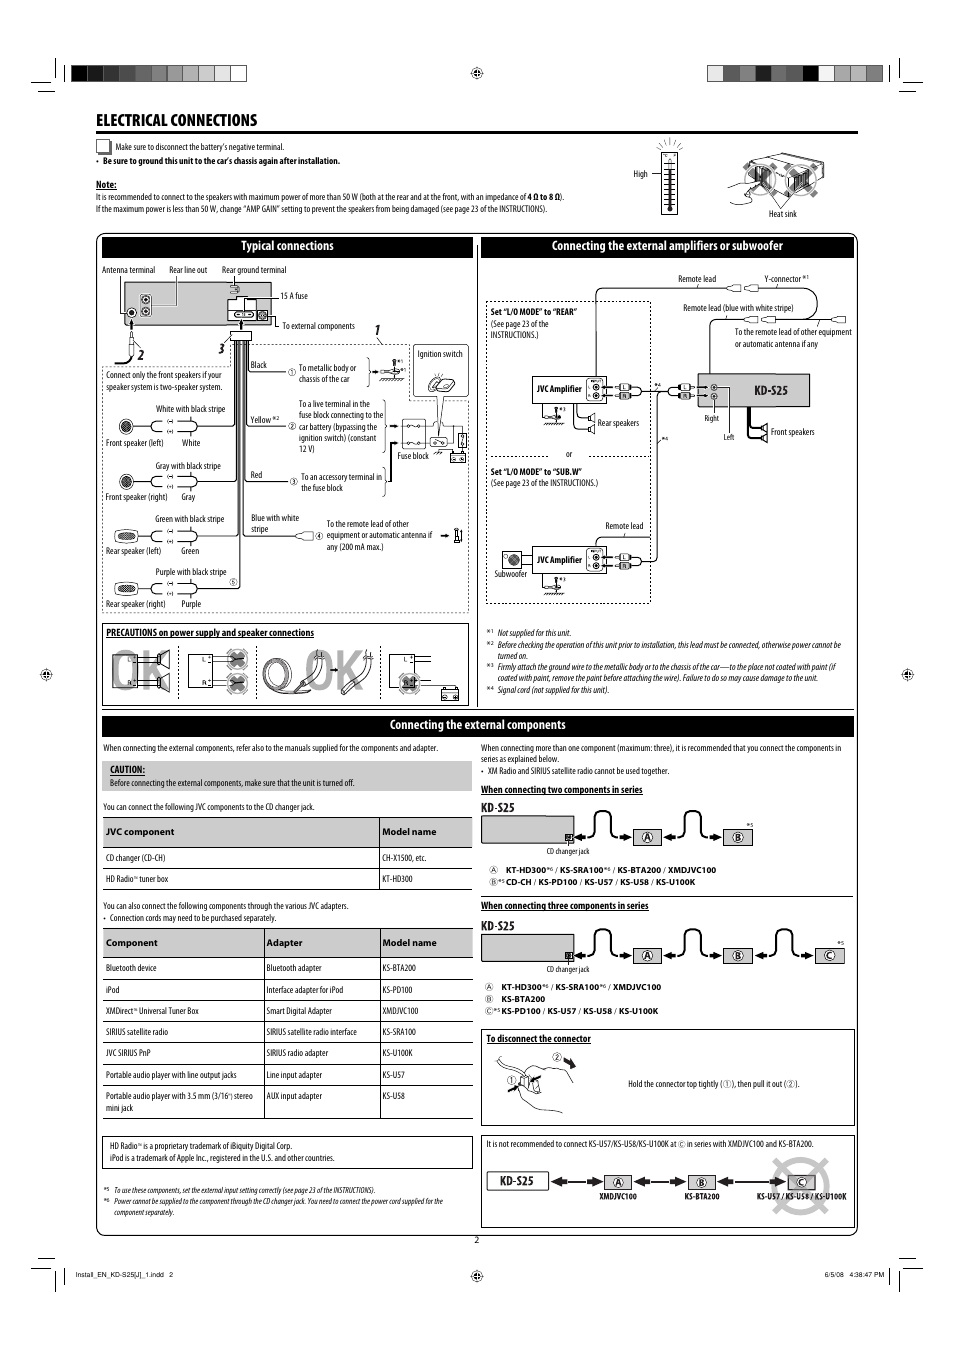 jvc kd s25 page2 jvc kd s25 wiring diagram jvc wiring harness \u2022 edmiracle co jvc kd s25 wiring diagram at bayanpartner.co